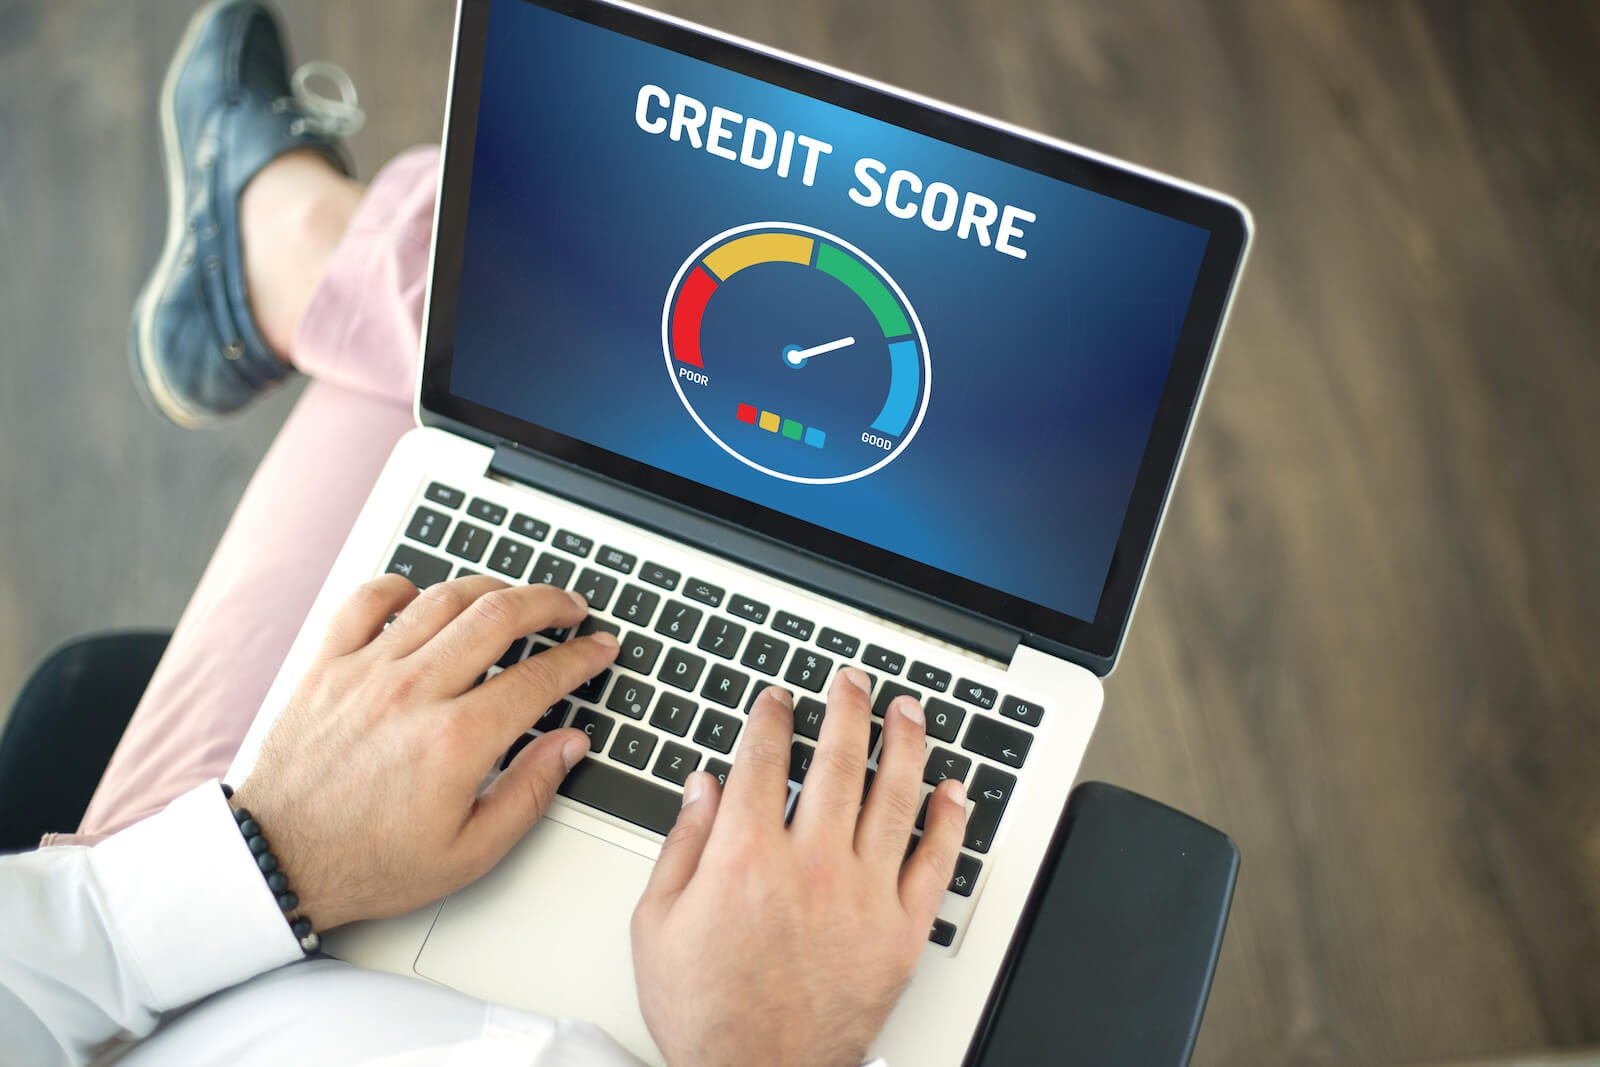 Will opening credit cards hurt your credit score? Here's what you need to know